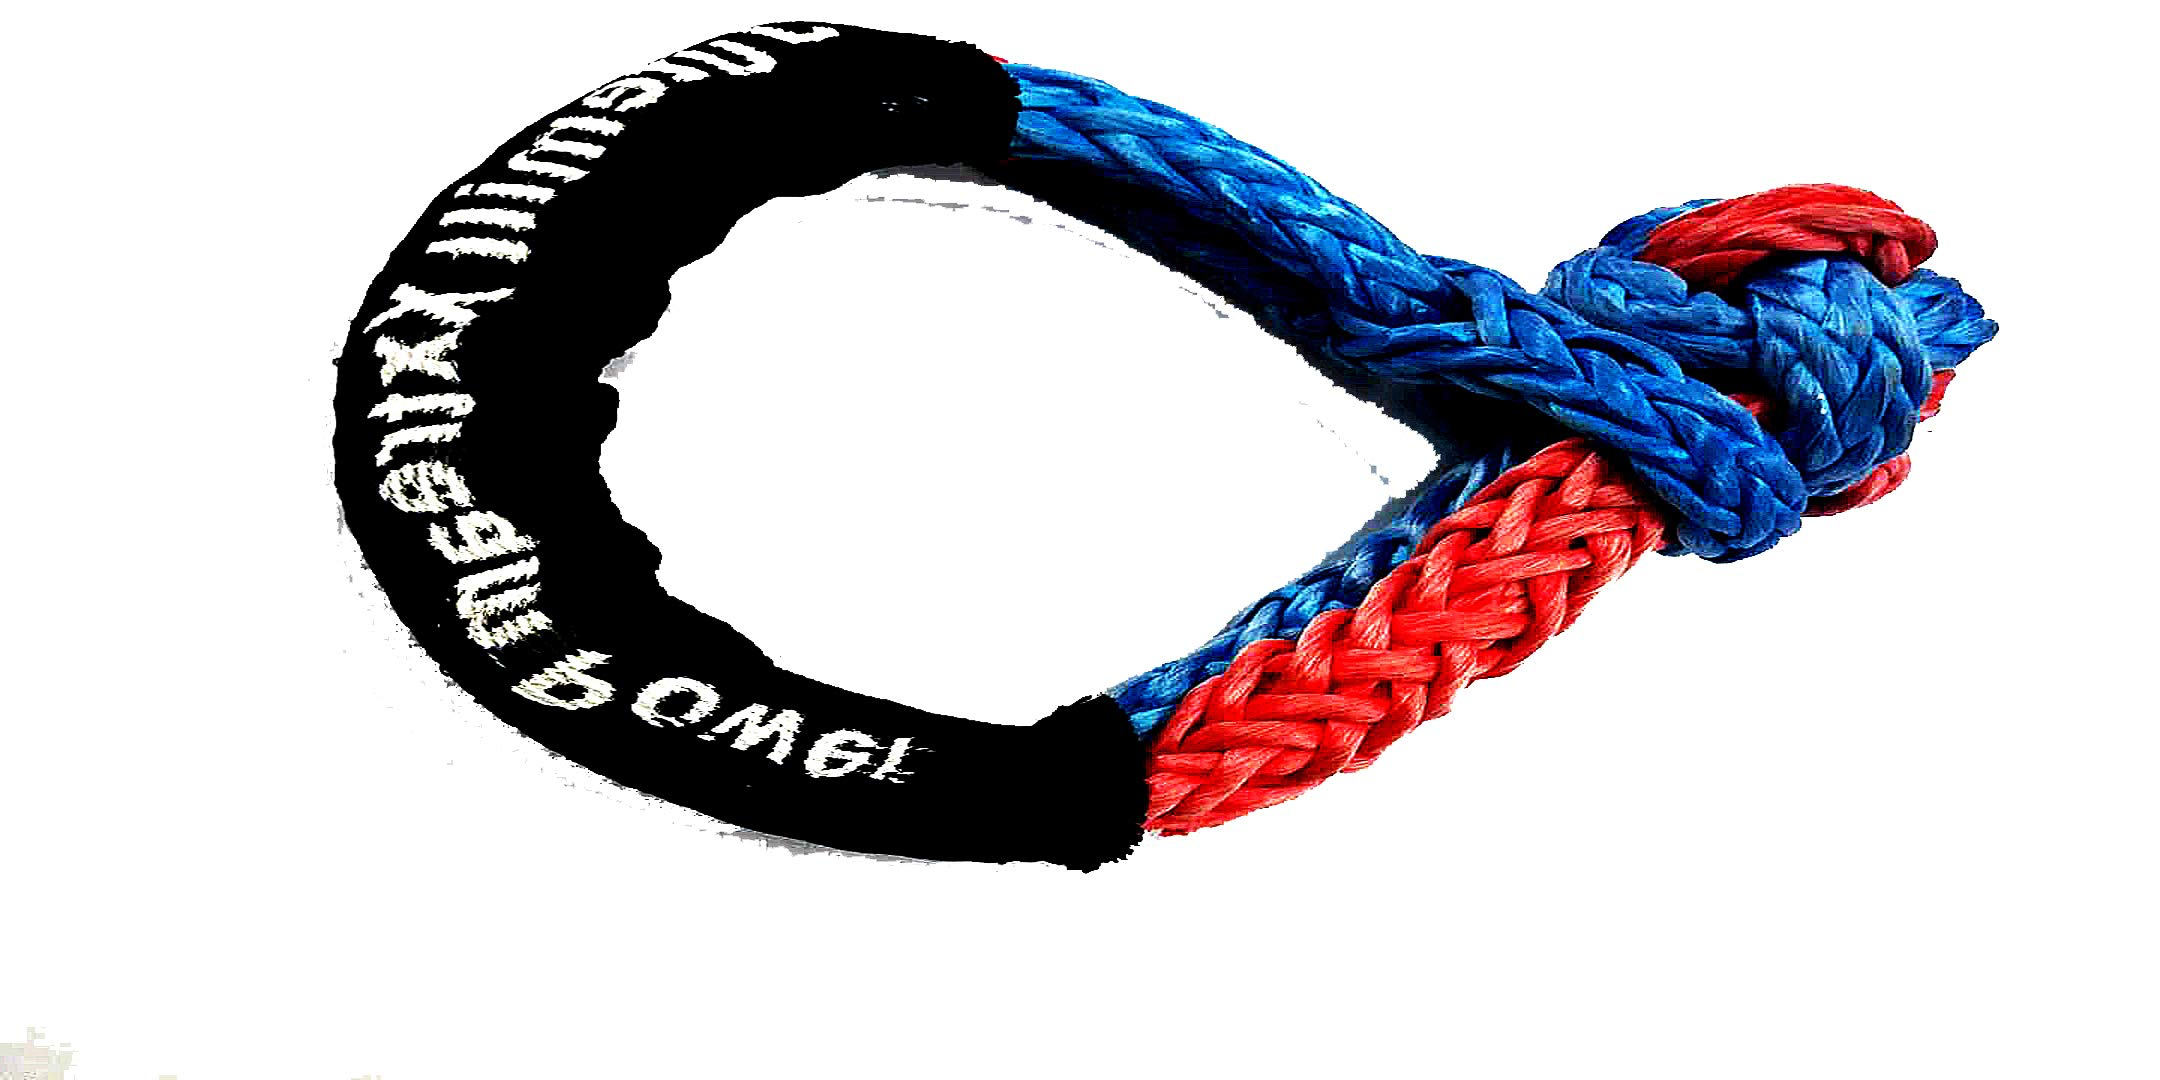 Synthetic UHMWPE recovery Soft Shackle 7/16''| 6''Loop| Breaking strength 34000 LBS| Apt for Heavy Handling: Recovery, ATV/UTV, Marine craft| Blue & Red by Jutemill